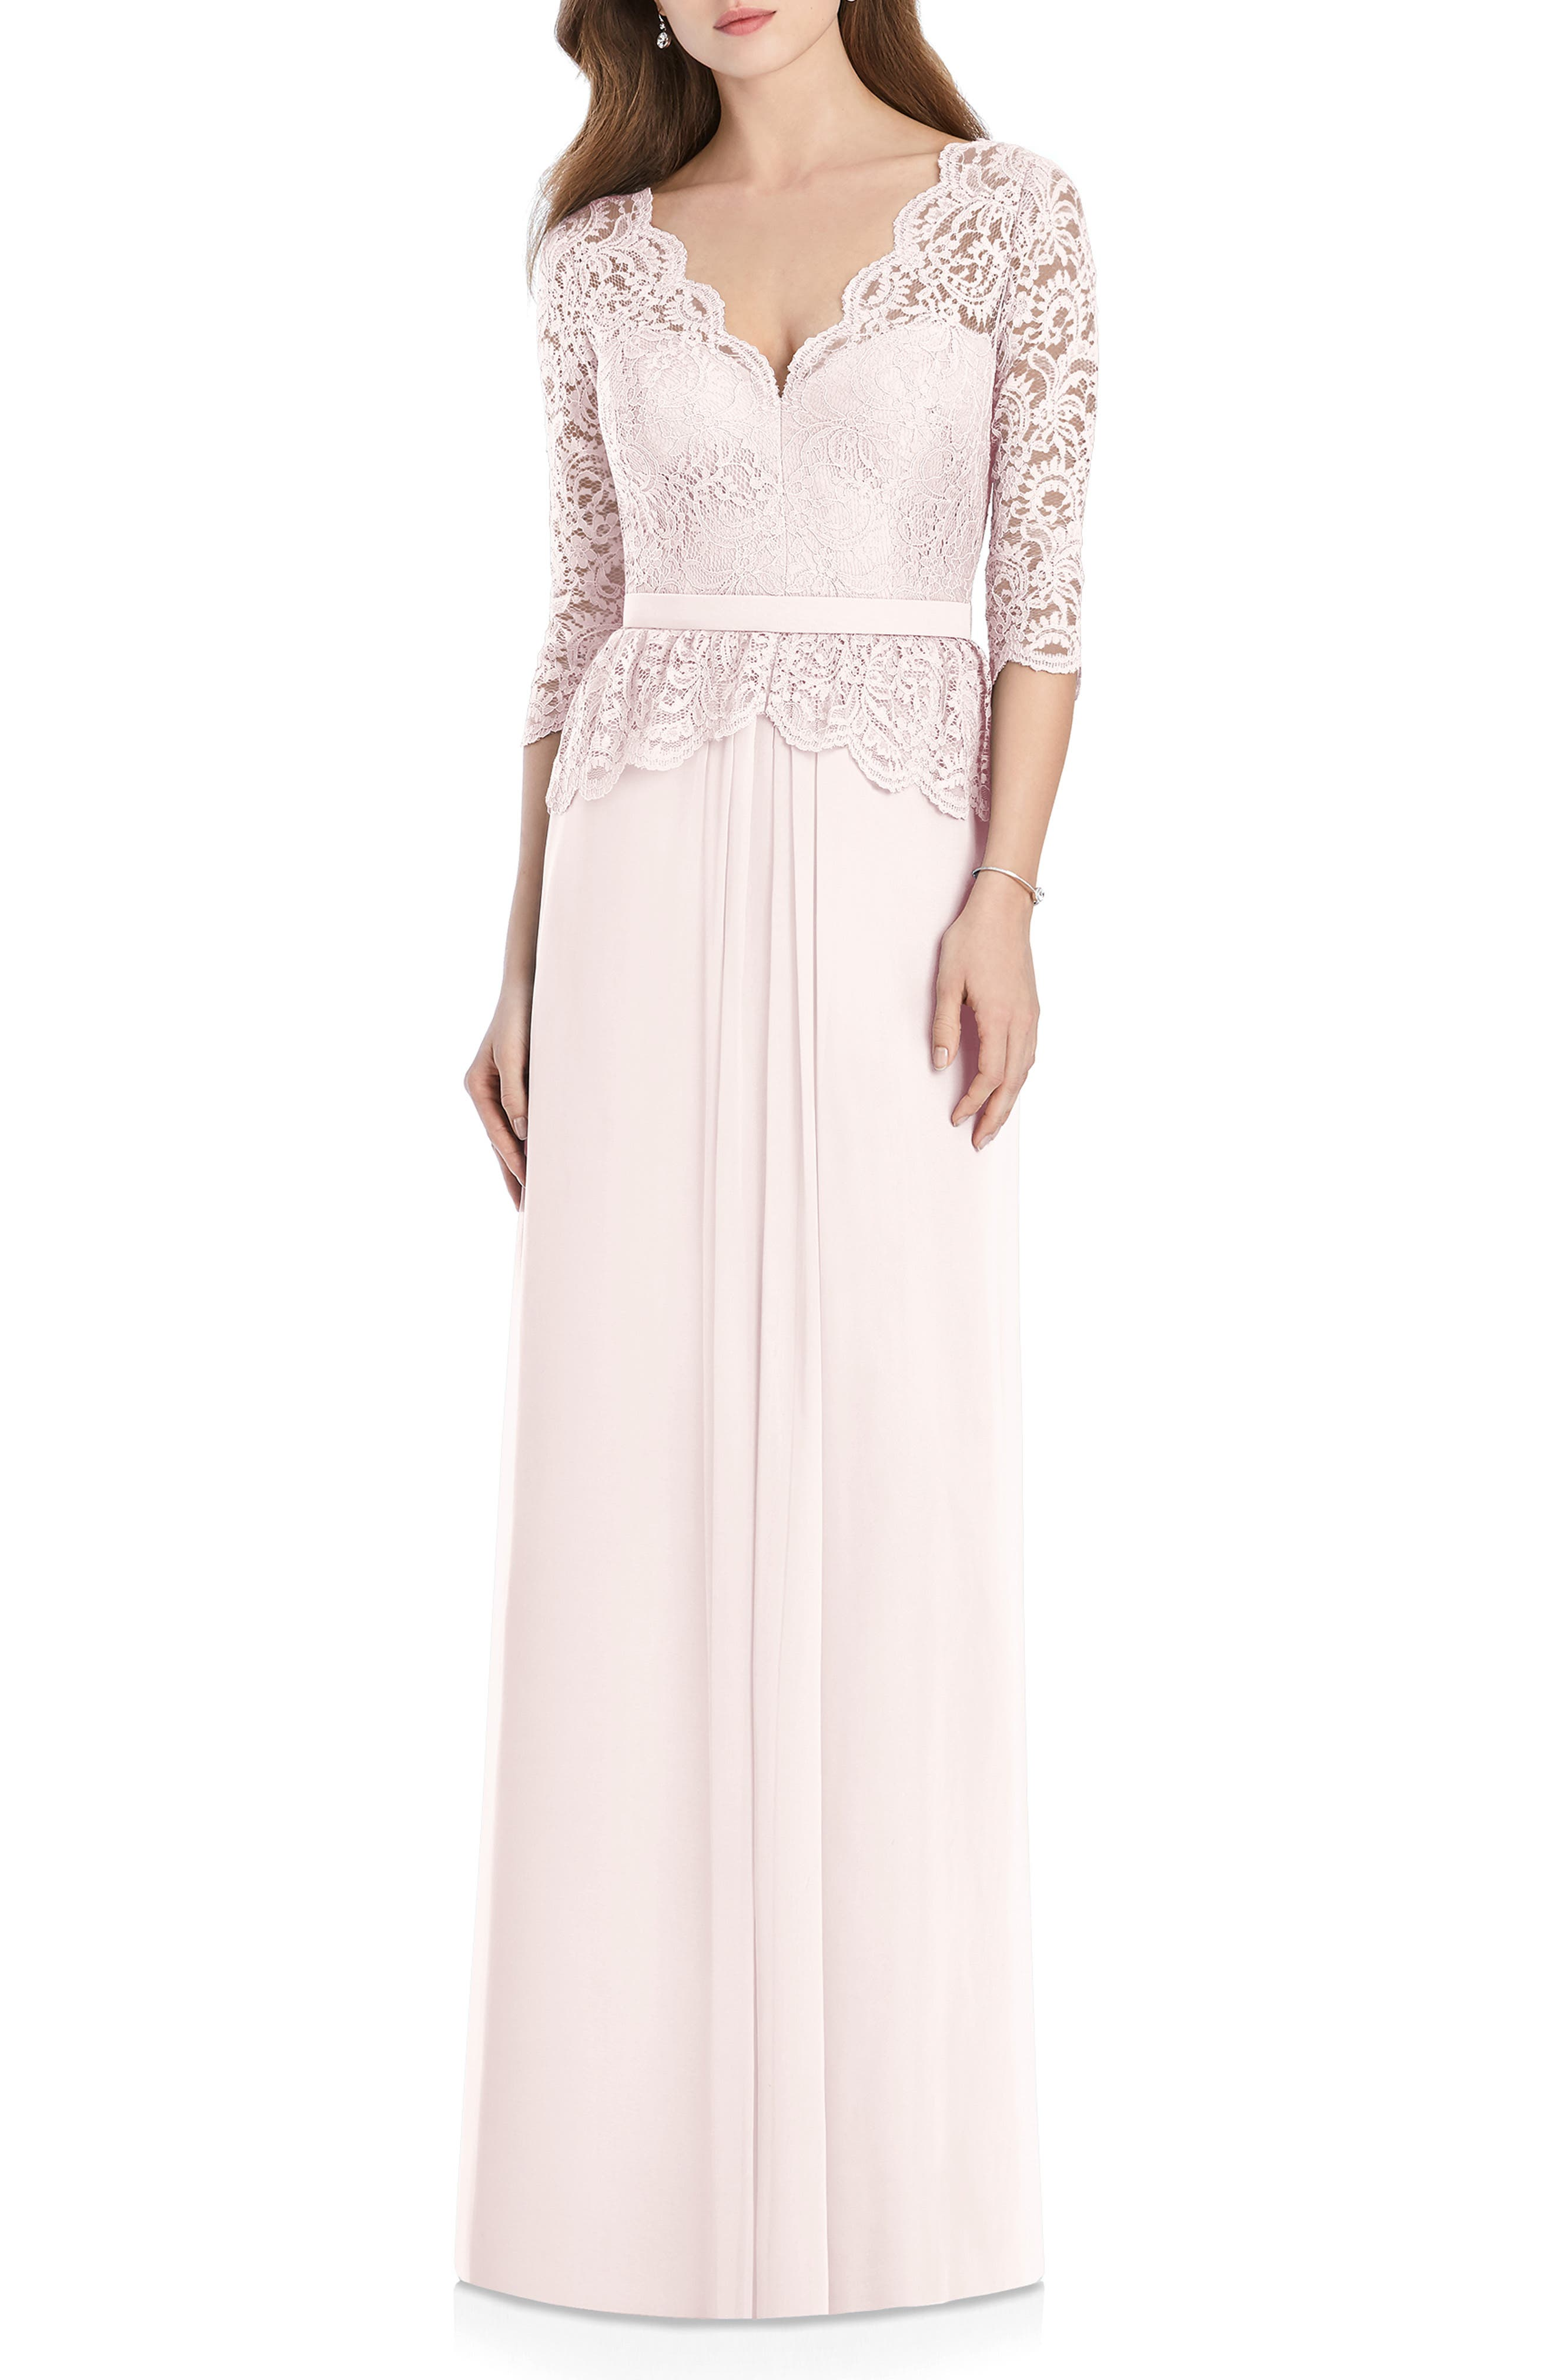 LUX CHIFFON GOWN